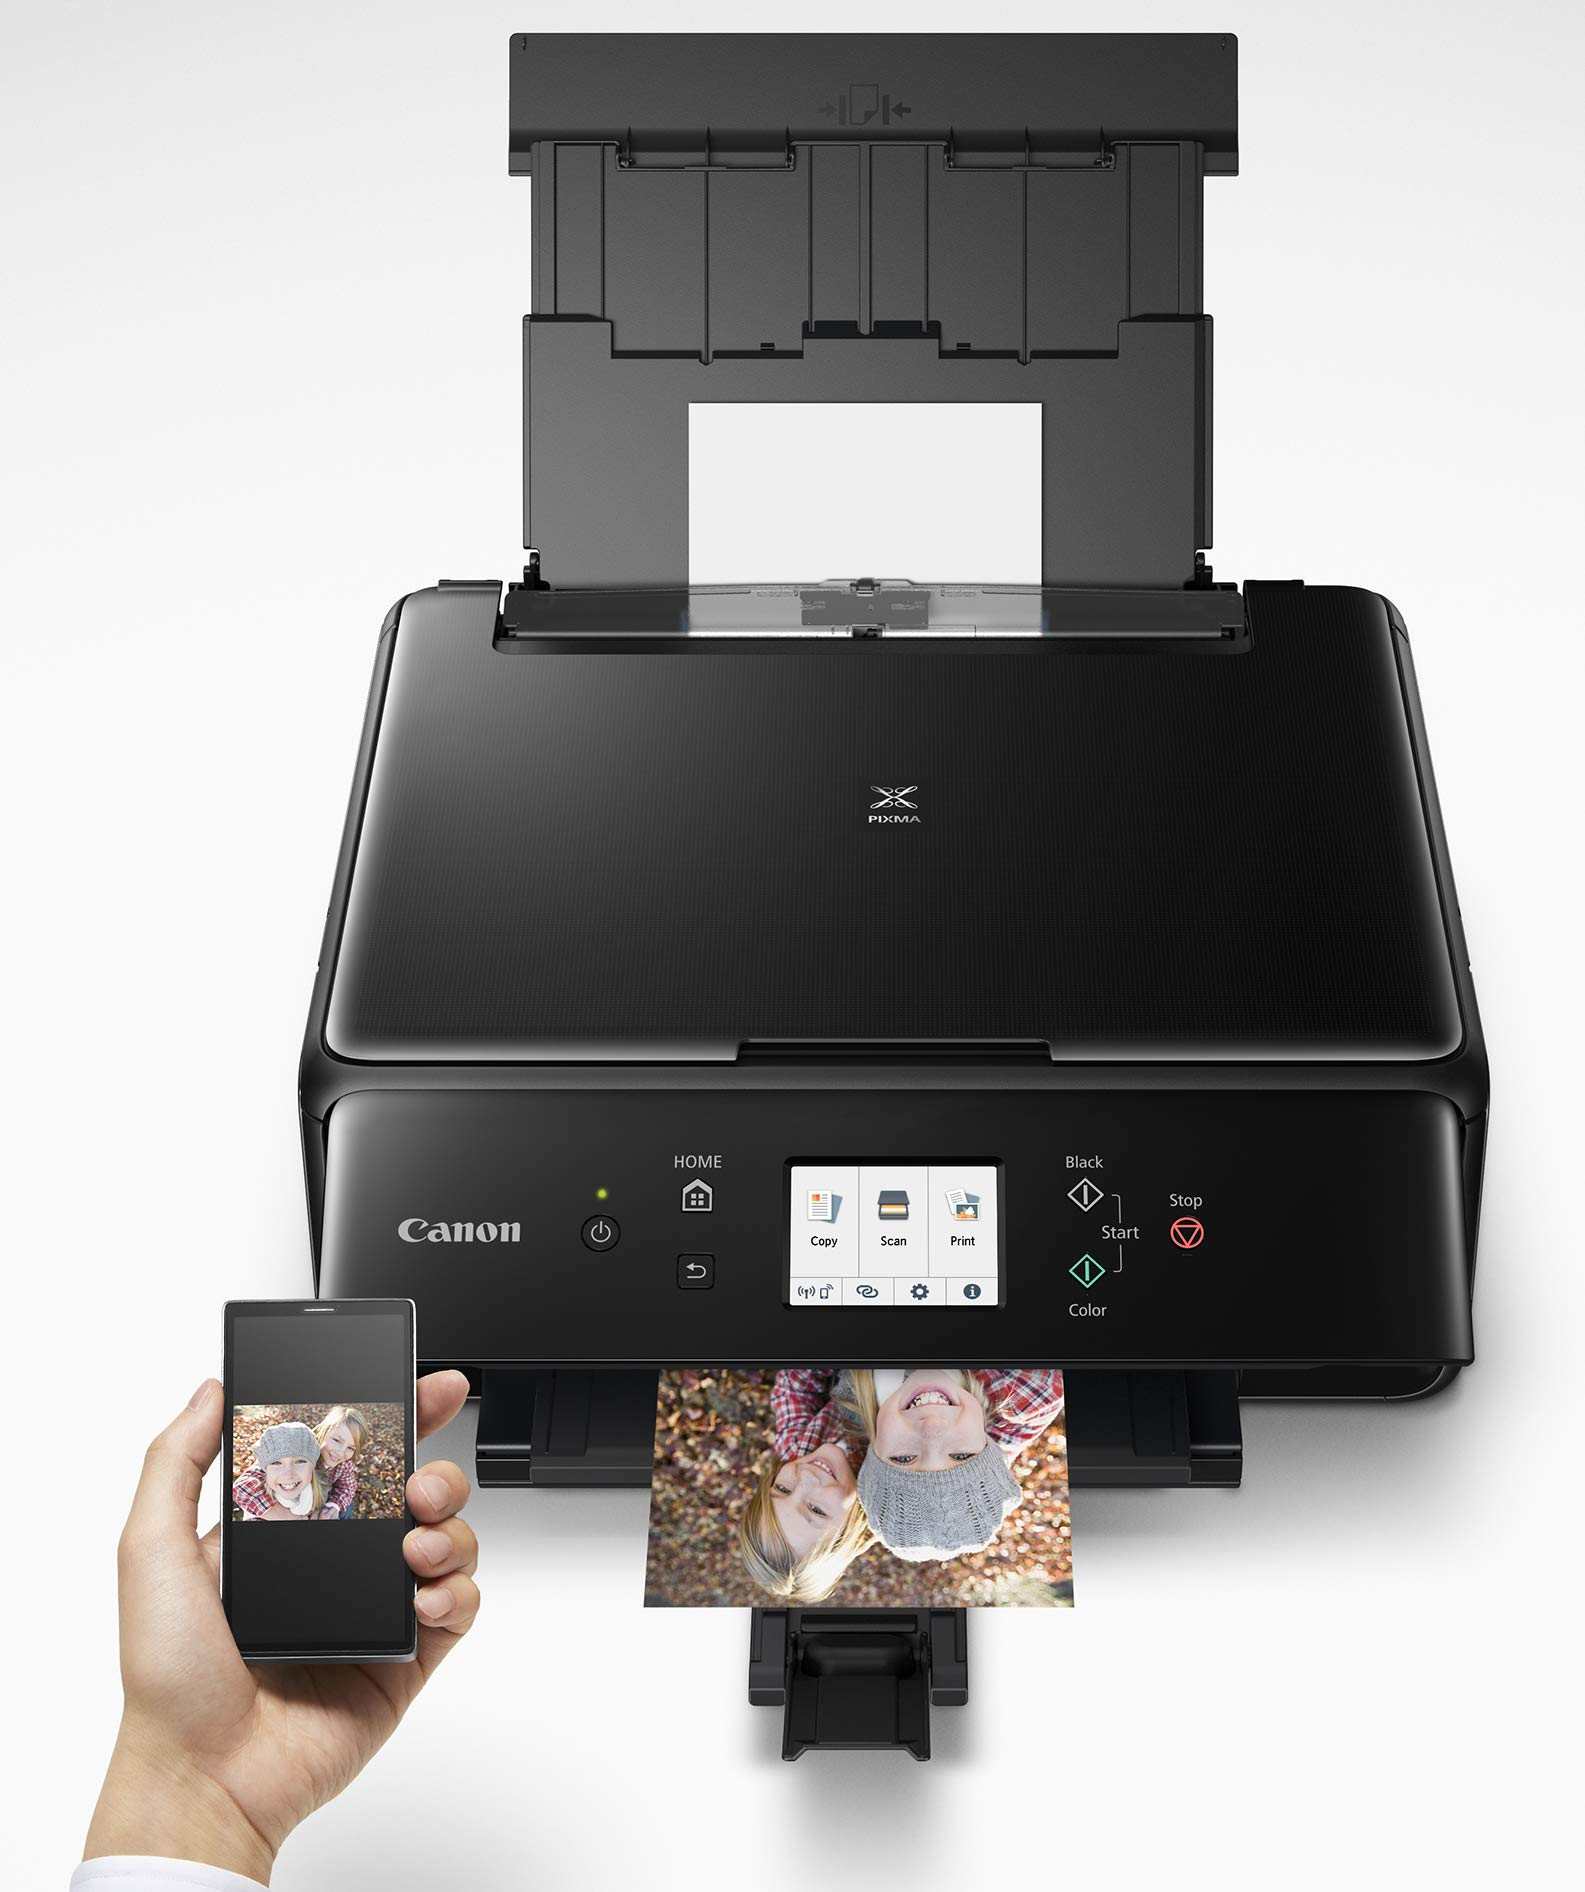 Canon 2986C002 PIXMA TS6220 Wireless All in One Photo Printer with Copier, Scanner and Mobile Printing, Black by Canon (Image #4)